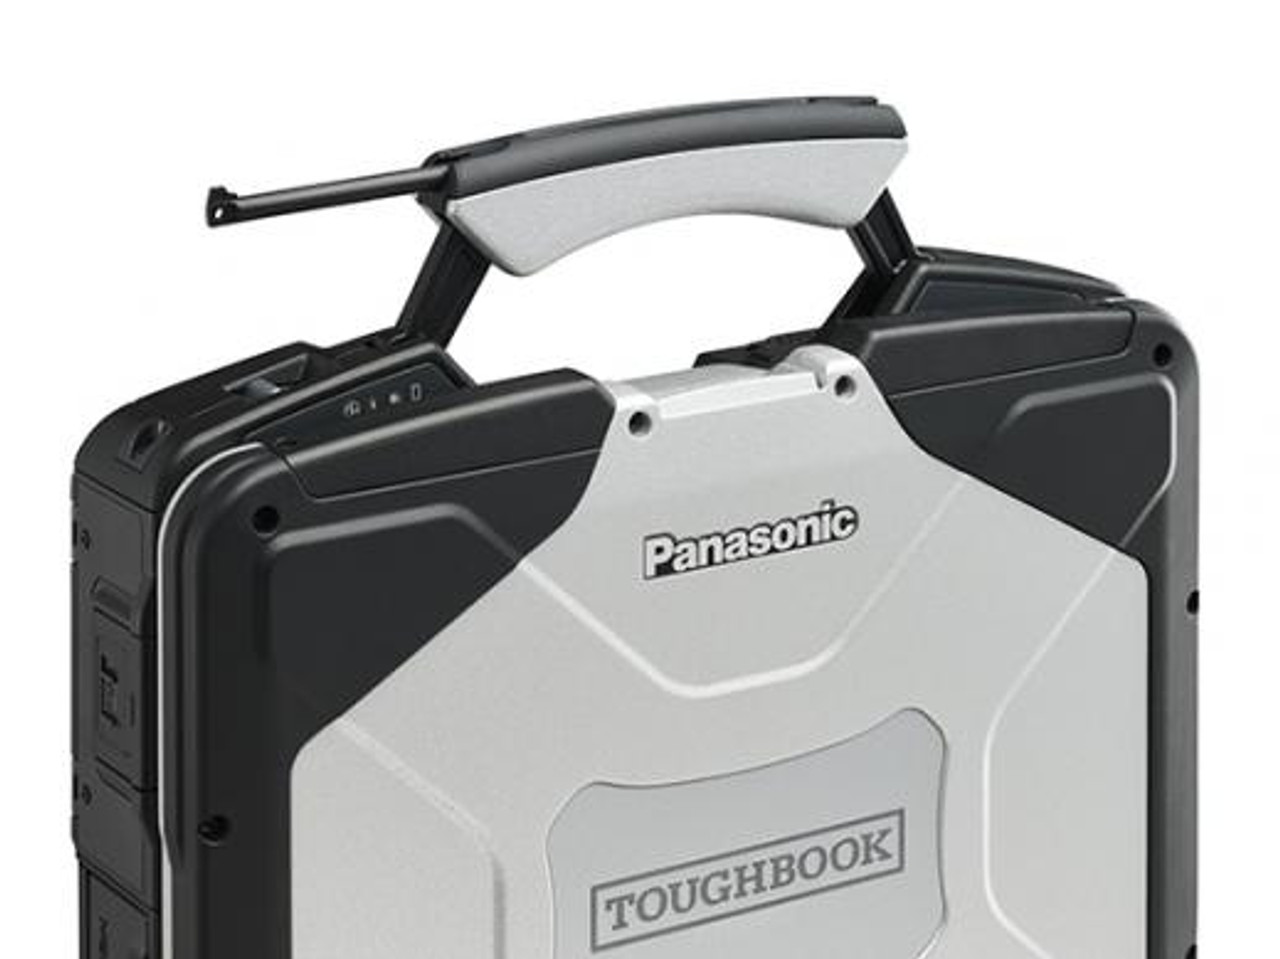 Panasonic Toughbook CF-31 MK6 Dual Pass Antenna